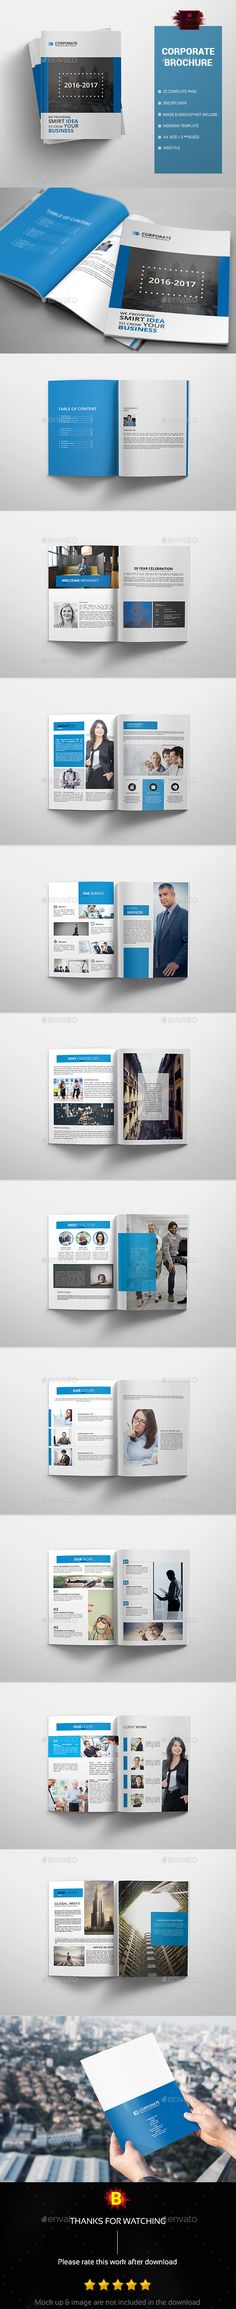 Brochure \ Company Timeline Fonts, Timeline and Creative - advertisement brochure